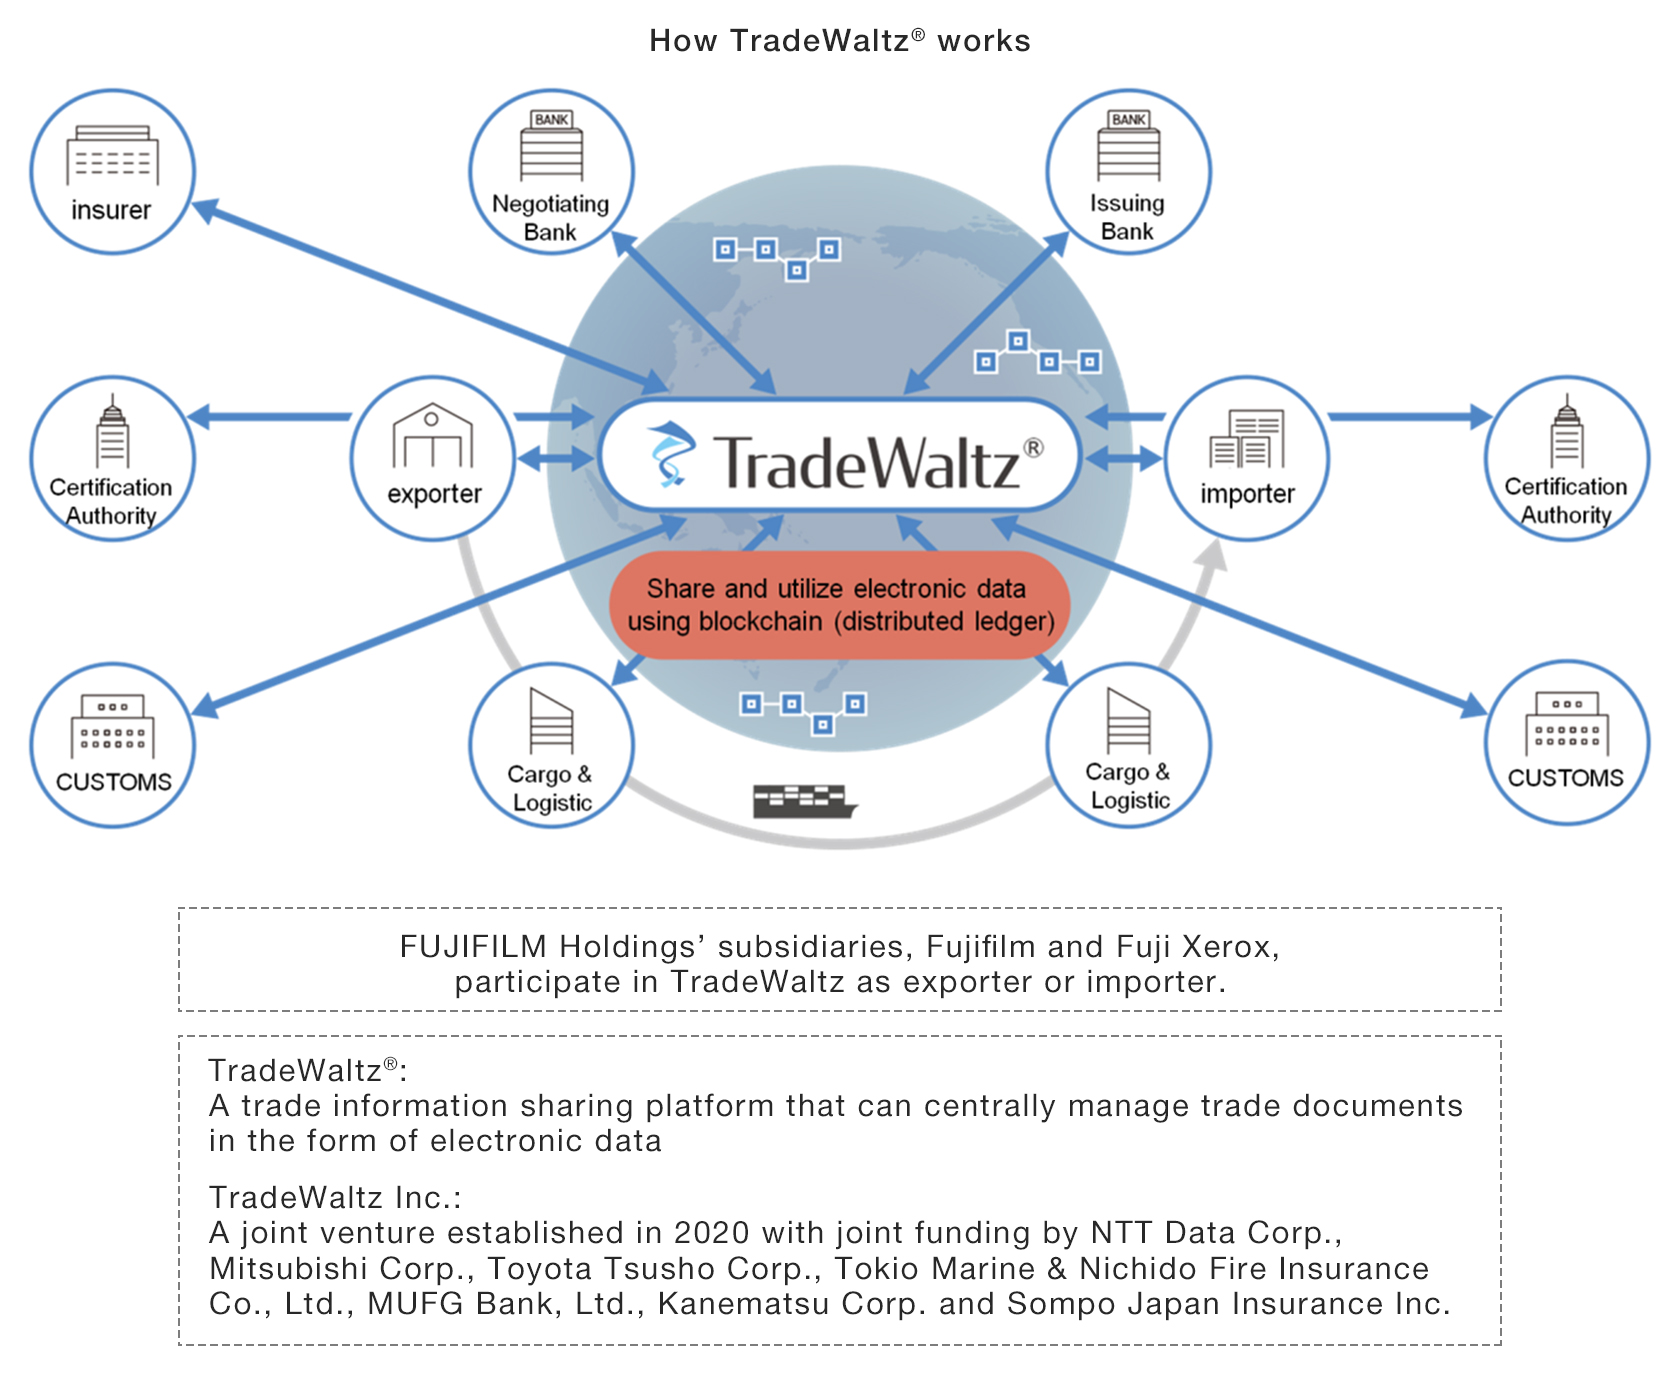 [Image]How TradeWaltz® works